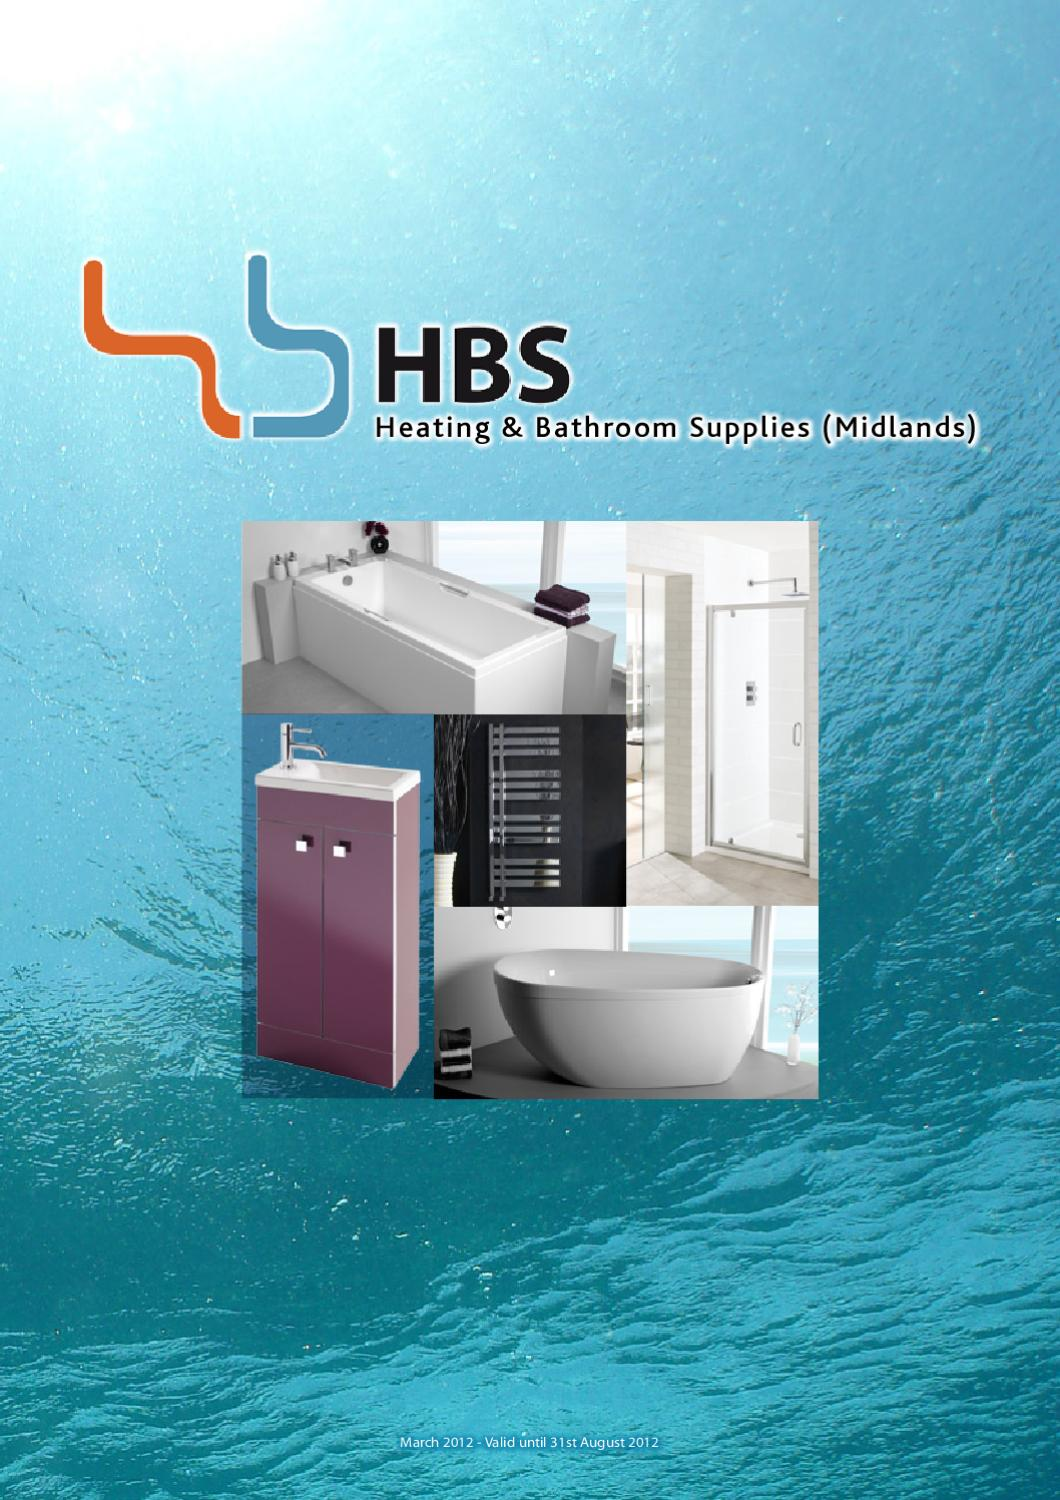 Heating & Bathroom Supplies by stu-art design - issuu